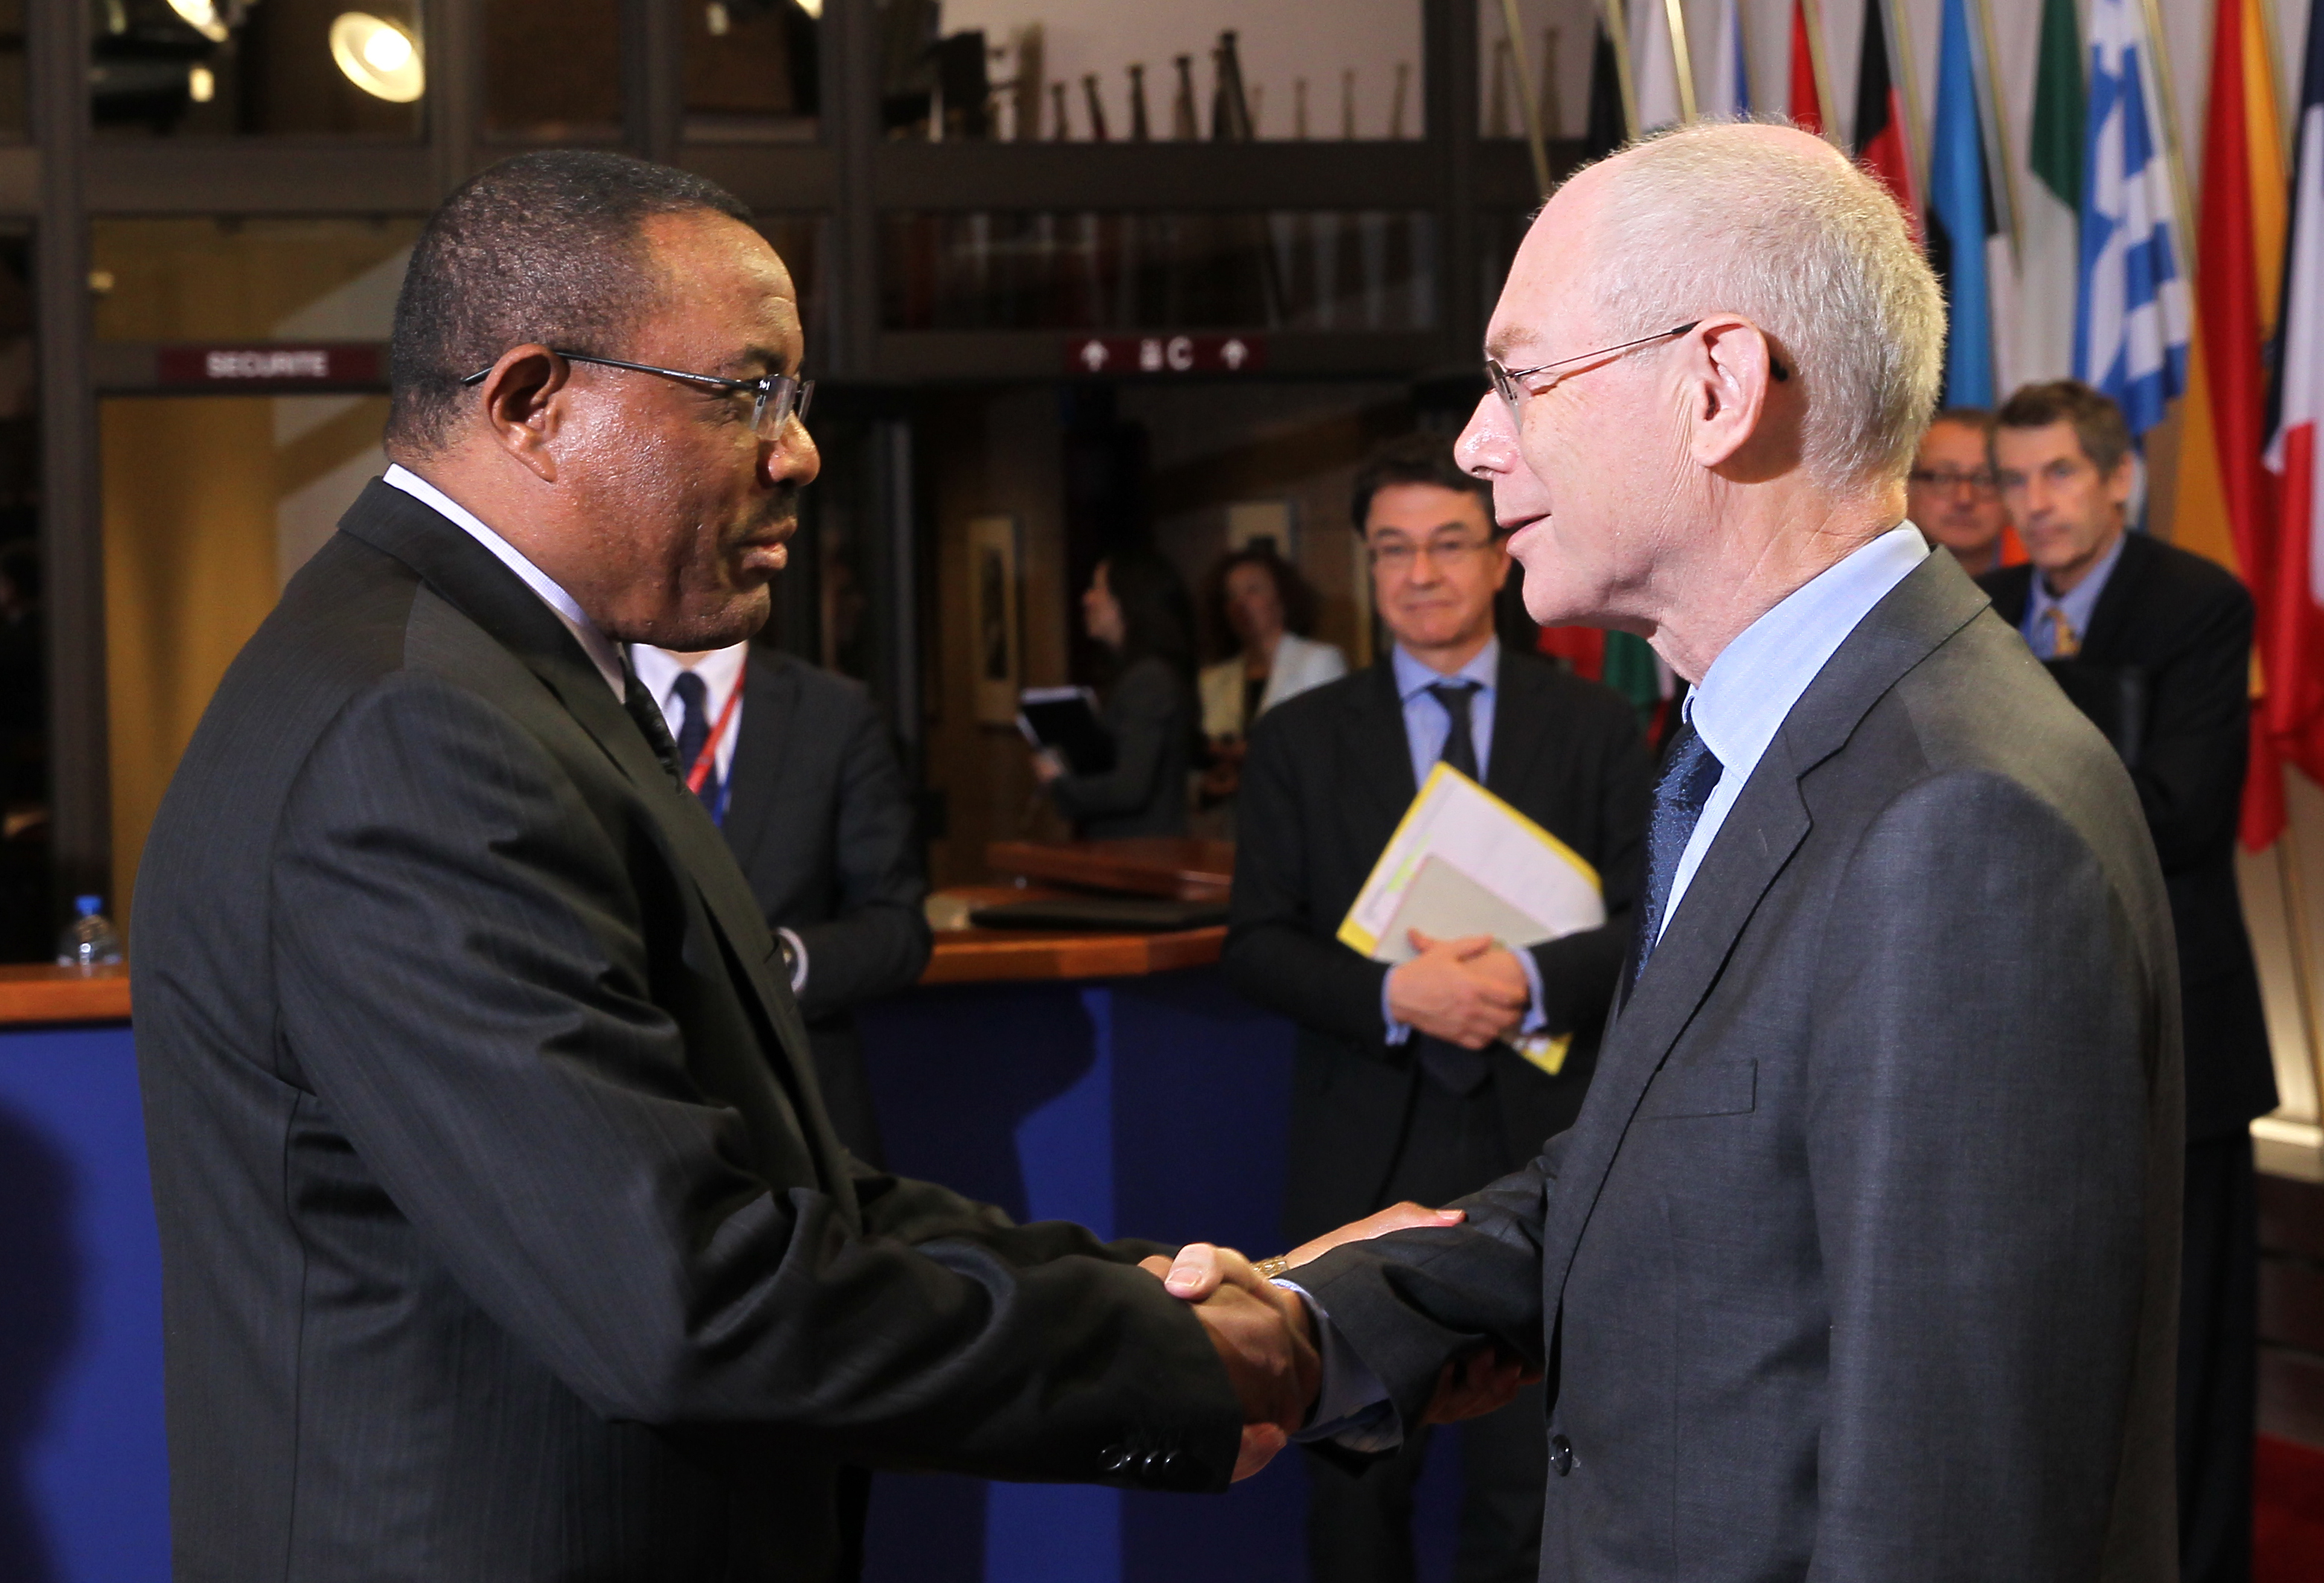 Prime Minister Hailemariam Desalegne and EU Council President Herman Van Rompuy